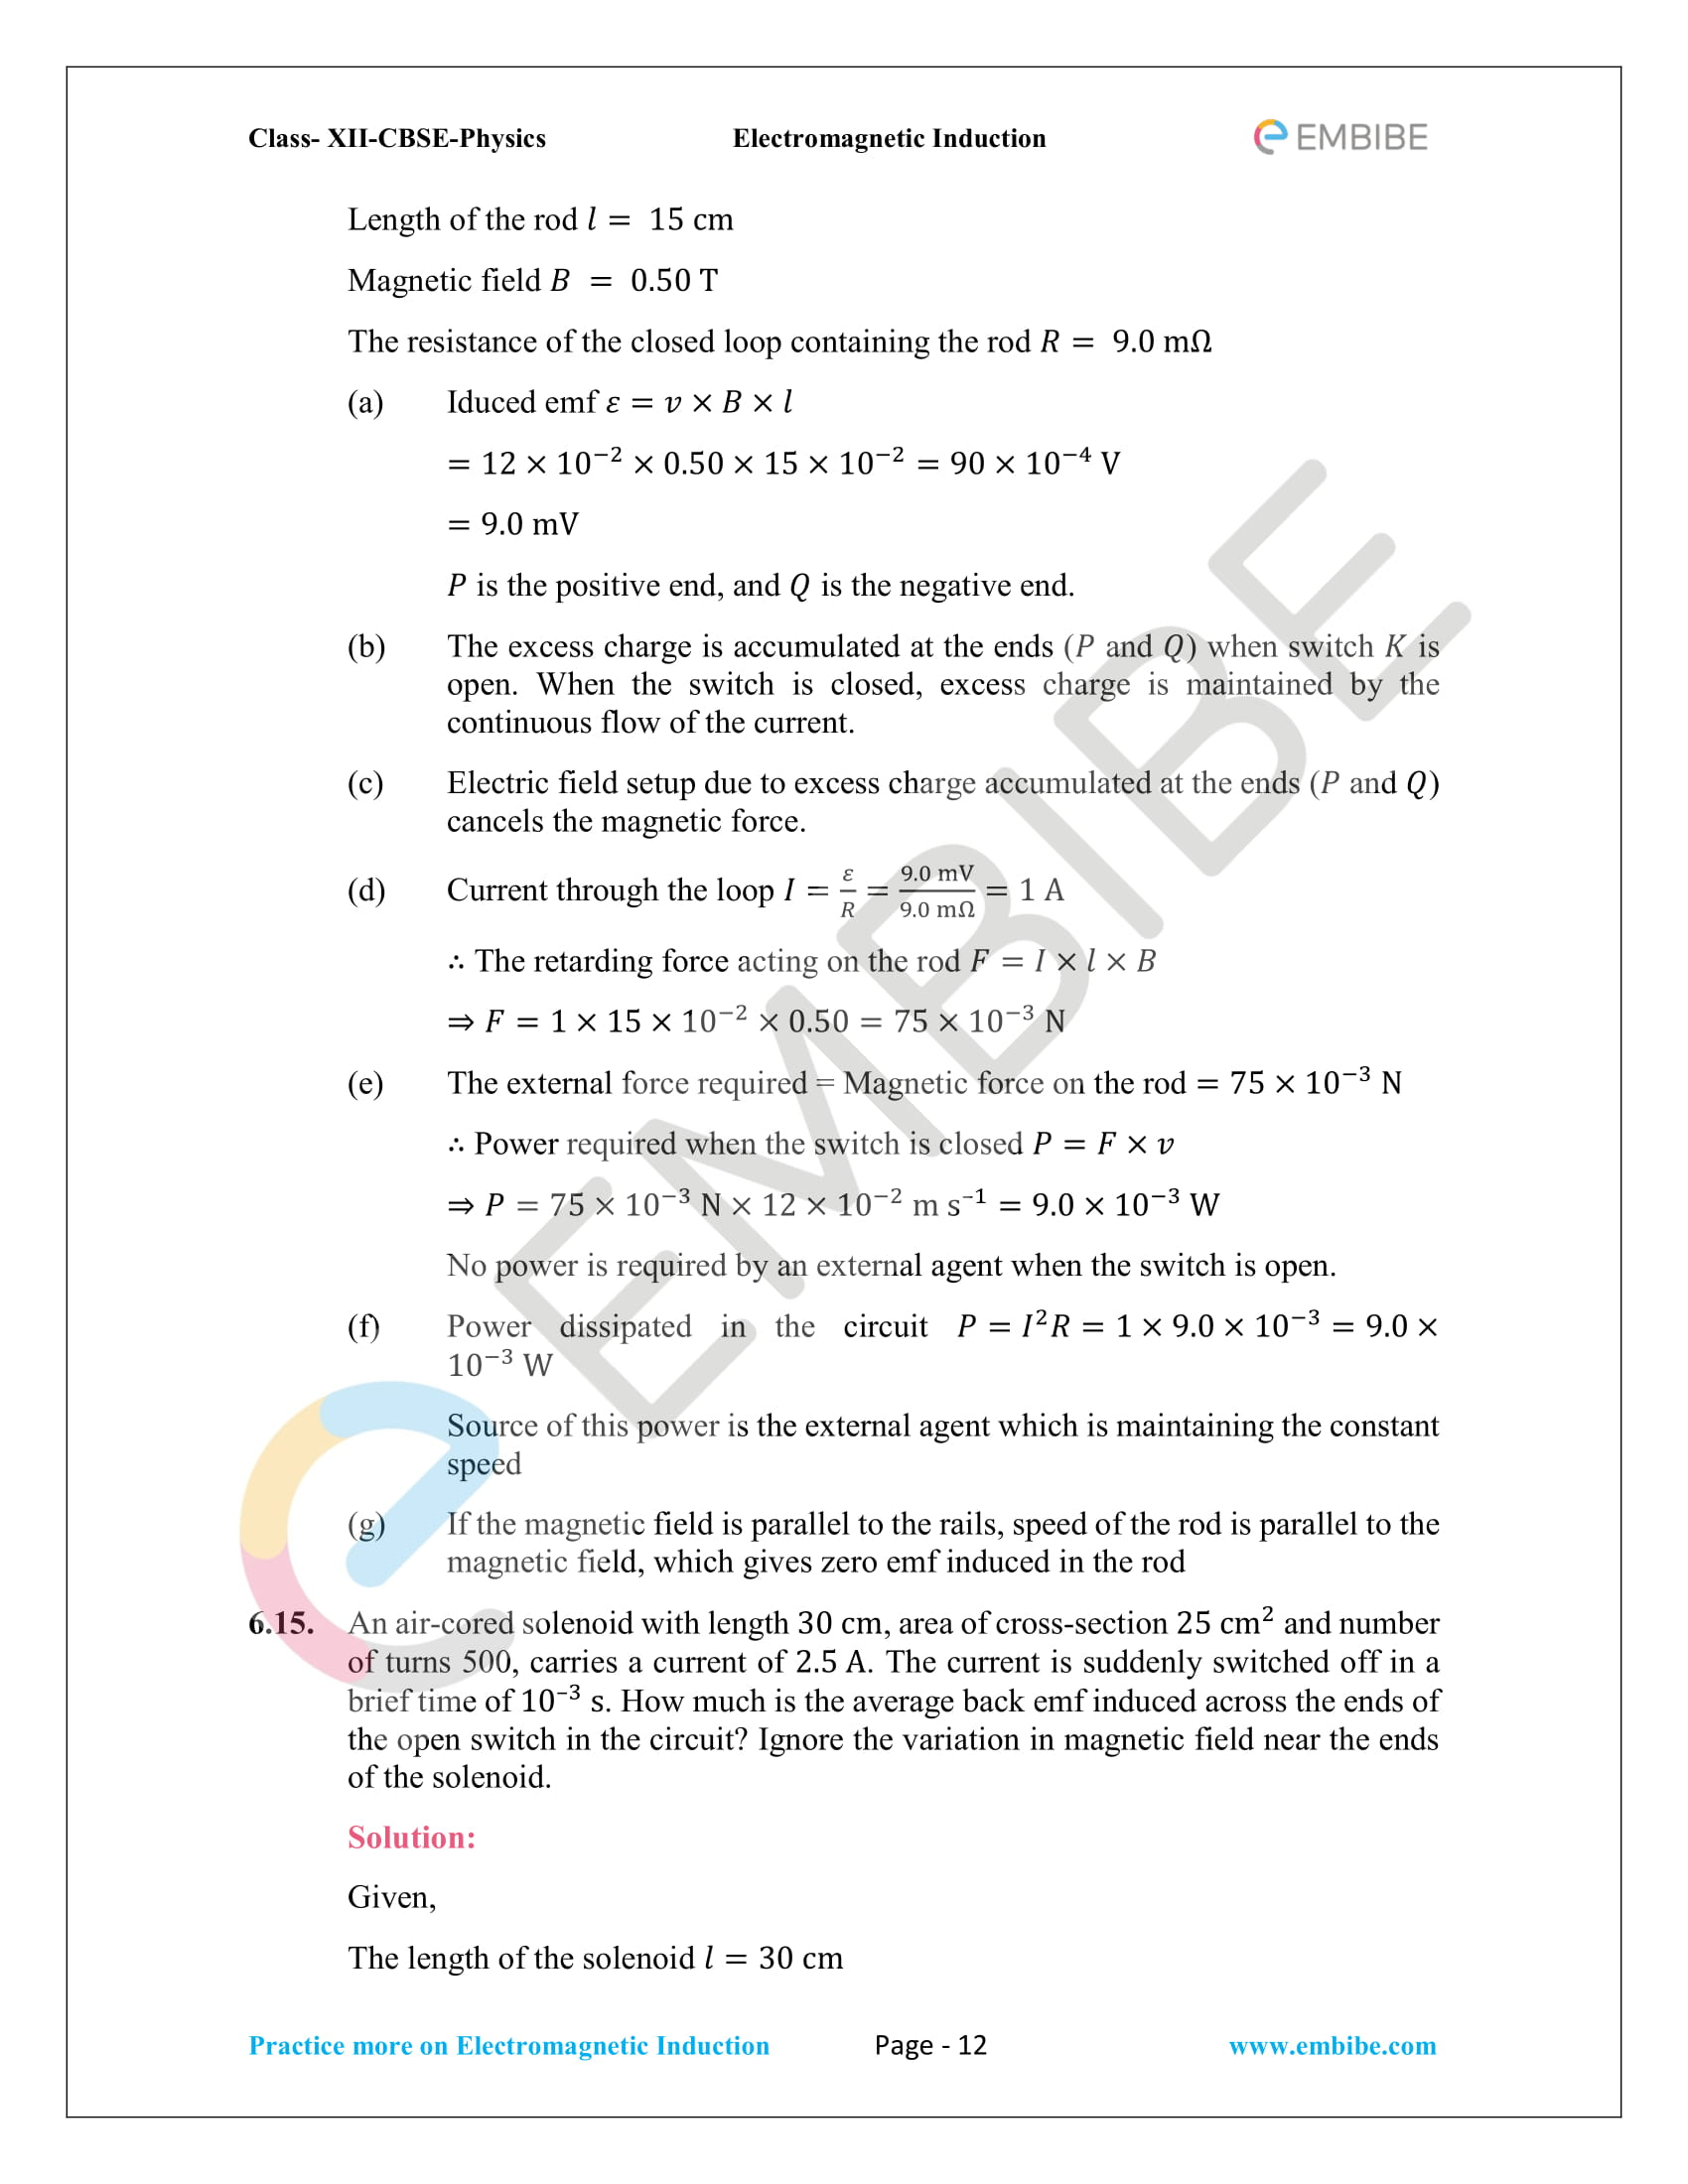 CBSE NCERT Solutions Class 12 Physics Chapter 6 PDF - Electromagnetic Induction - 12